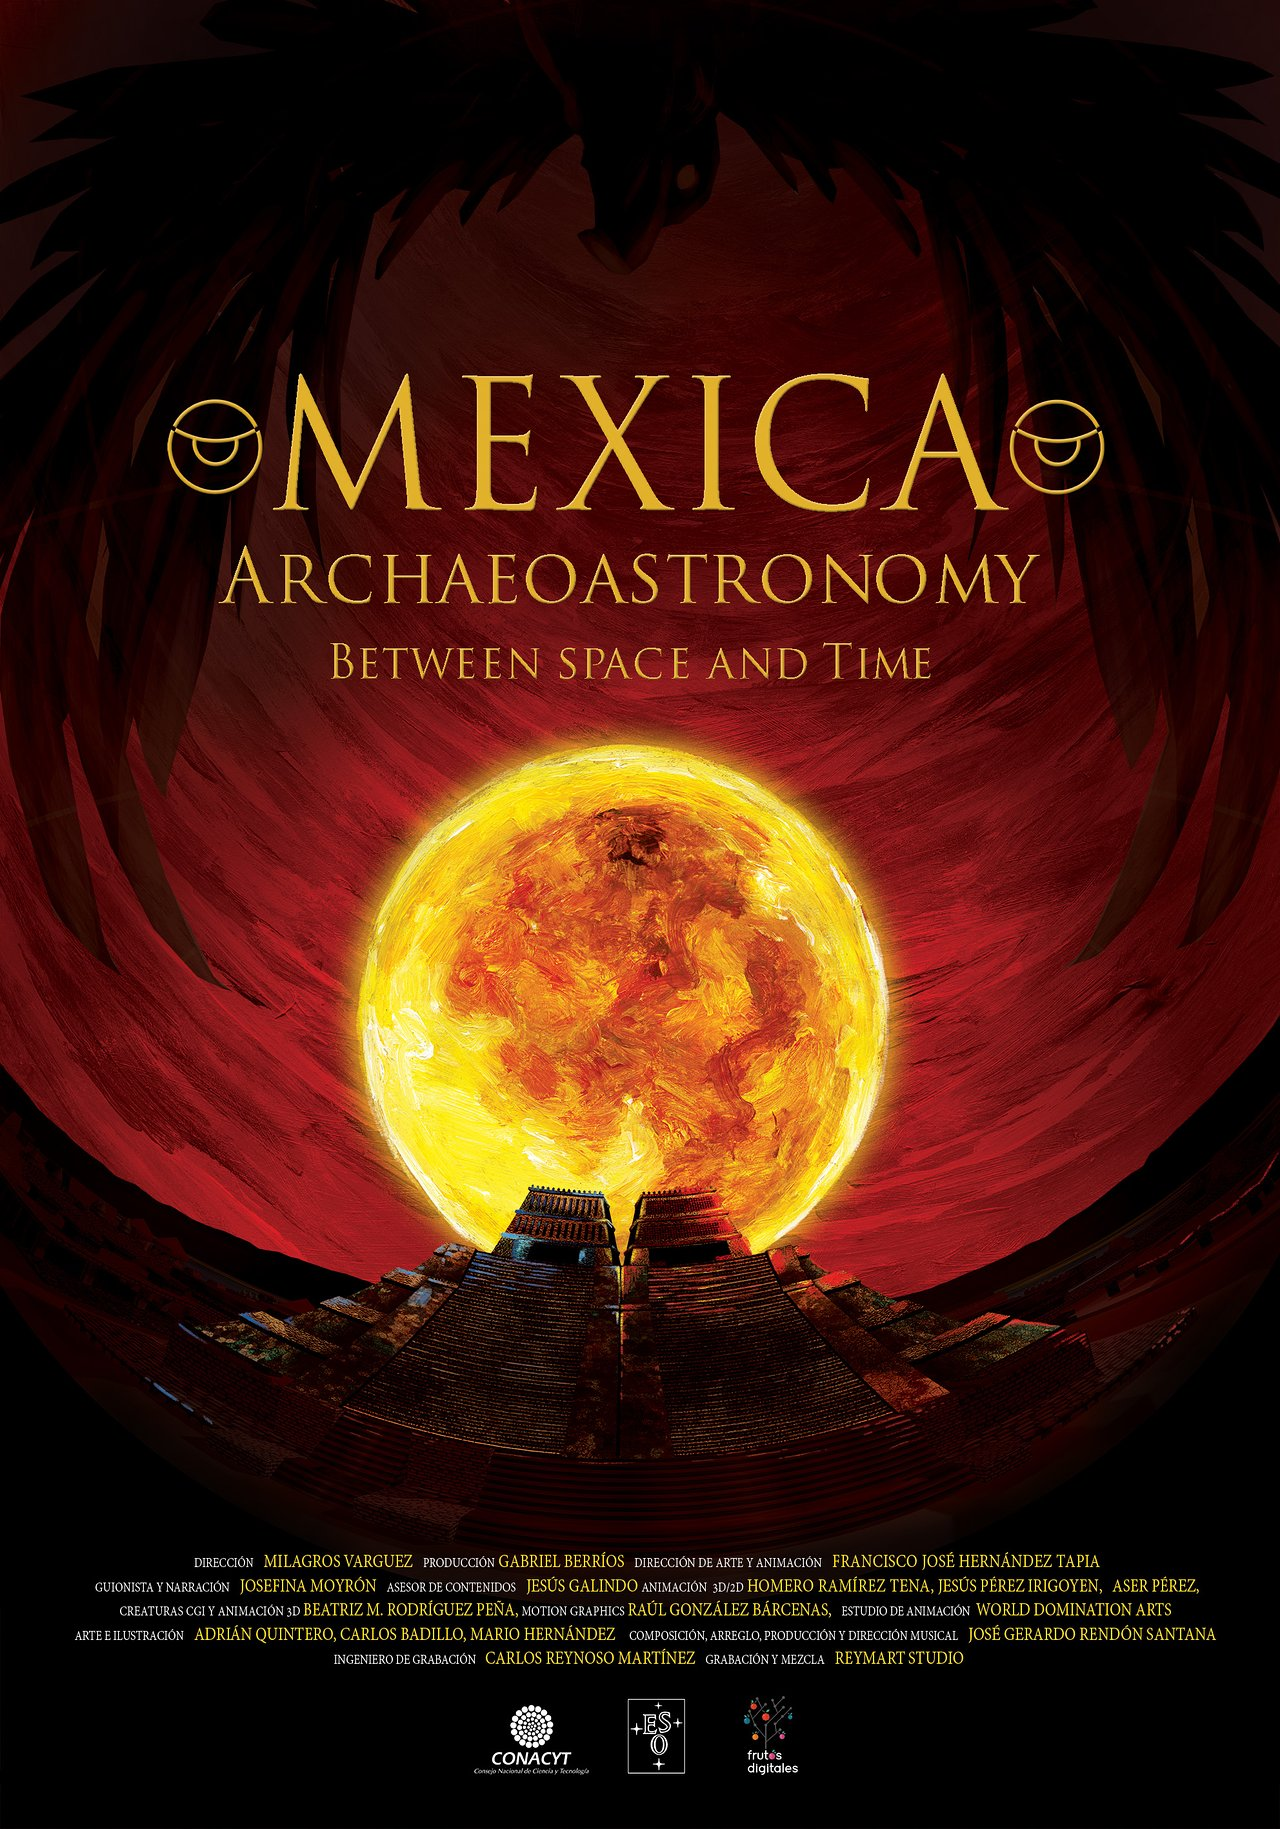 Mexica Archaeoastronomy: Between Space and Time